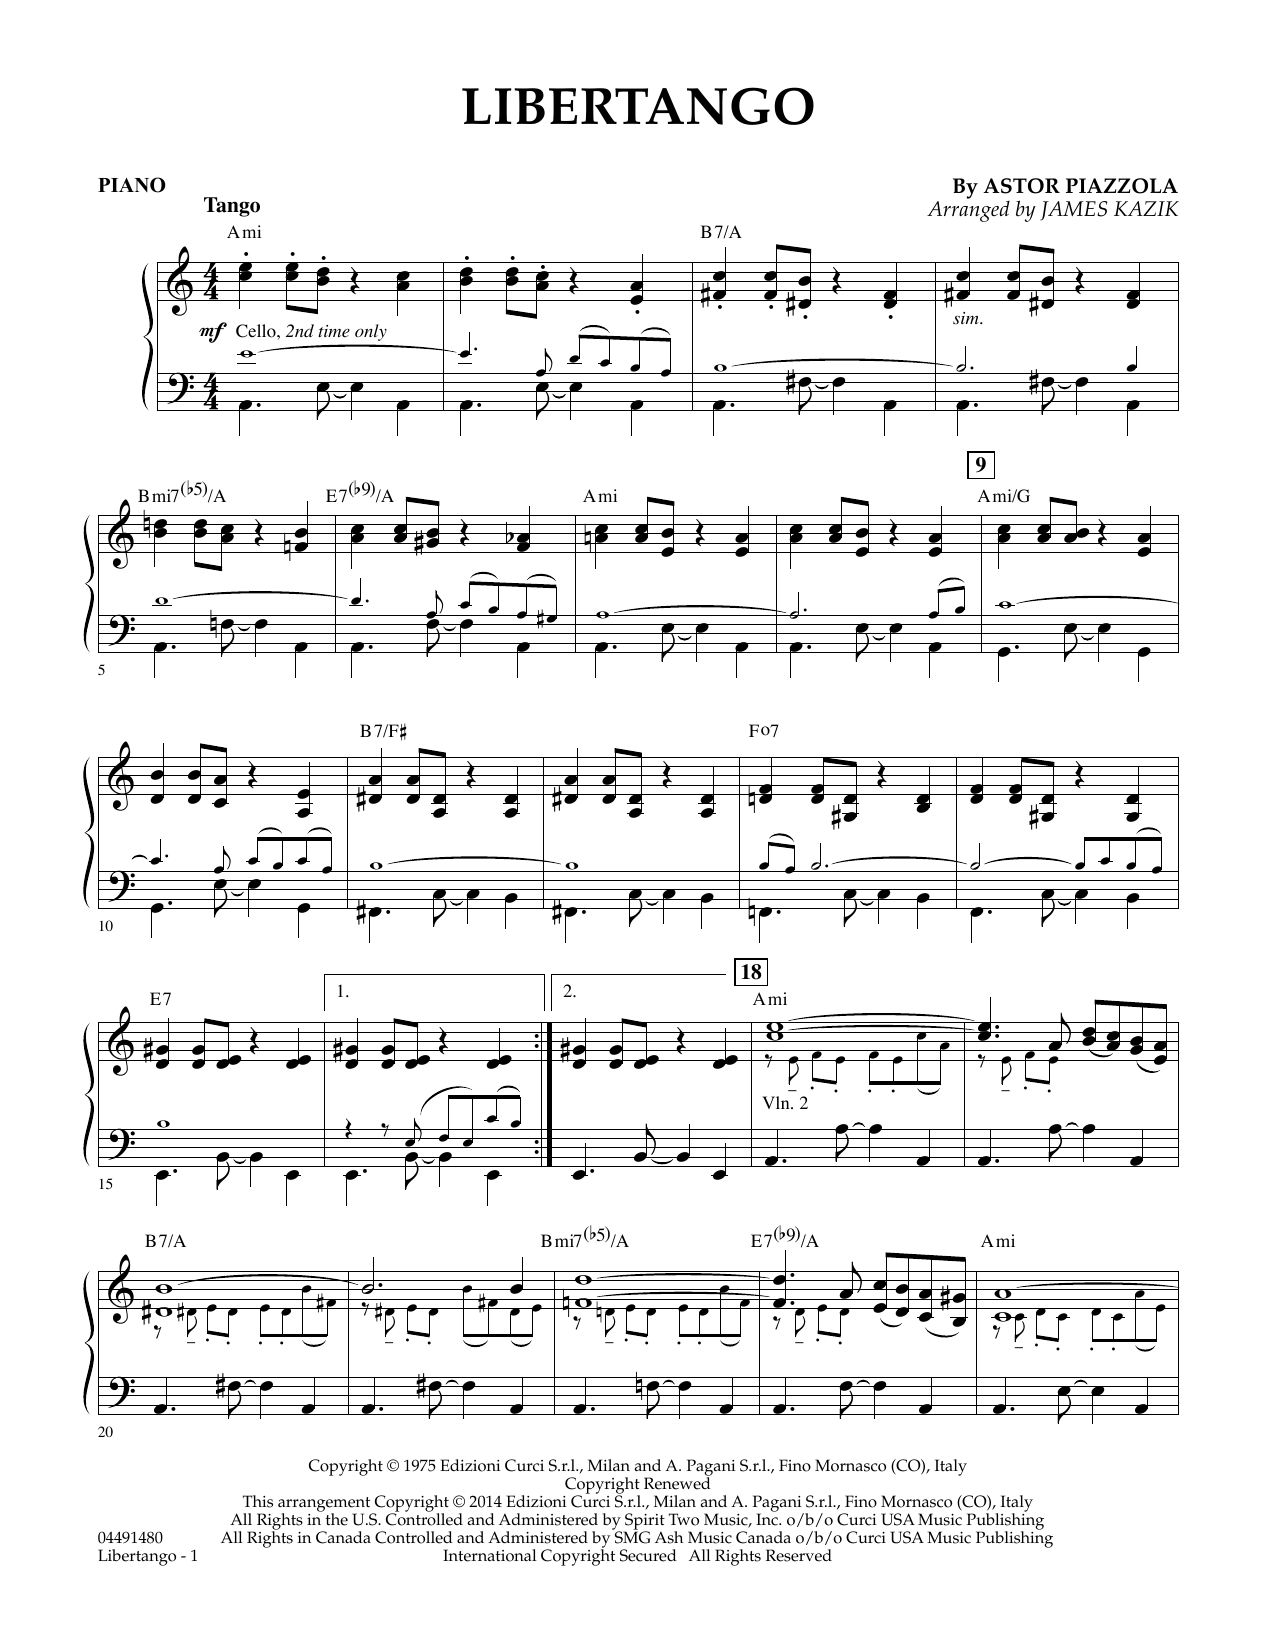 James Kazik Libertango - Piano sheet music preview music notes and score for Orchestra including 3 page(s)